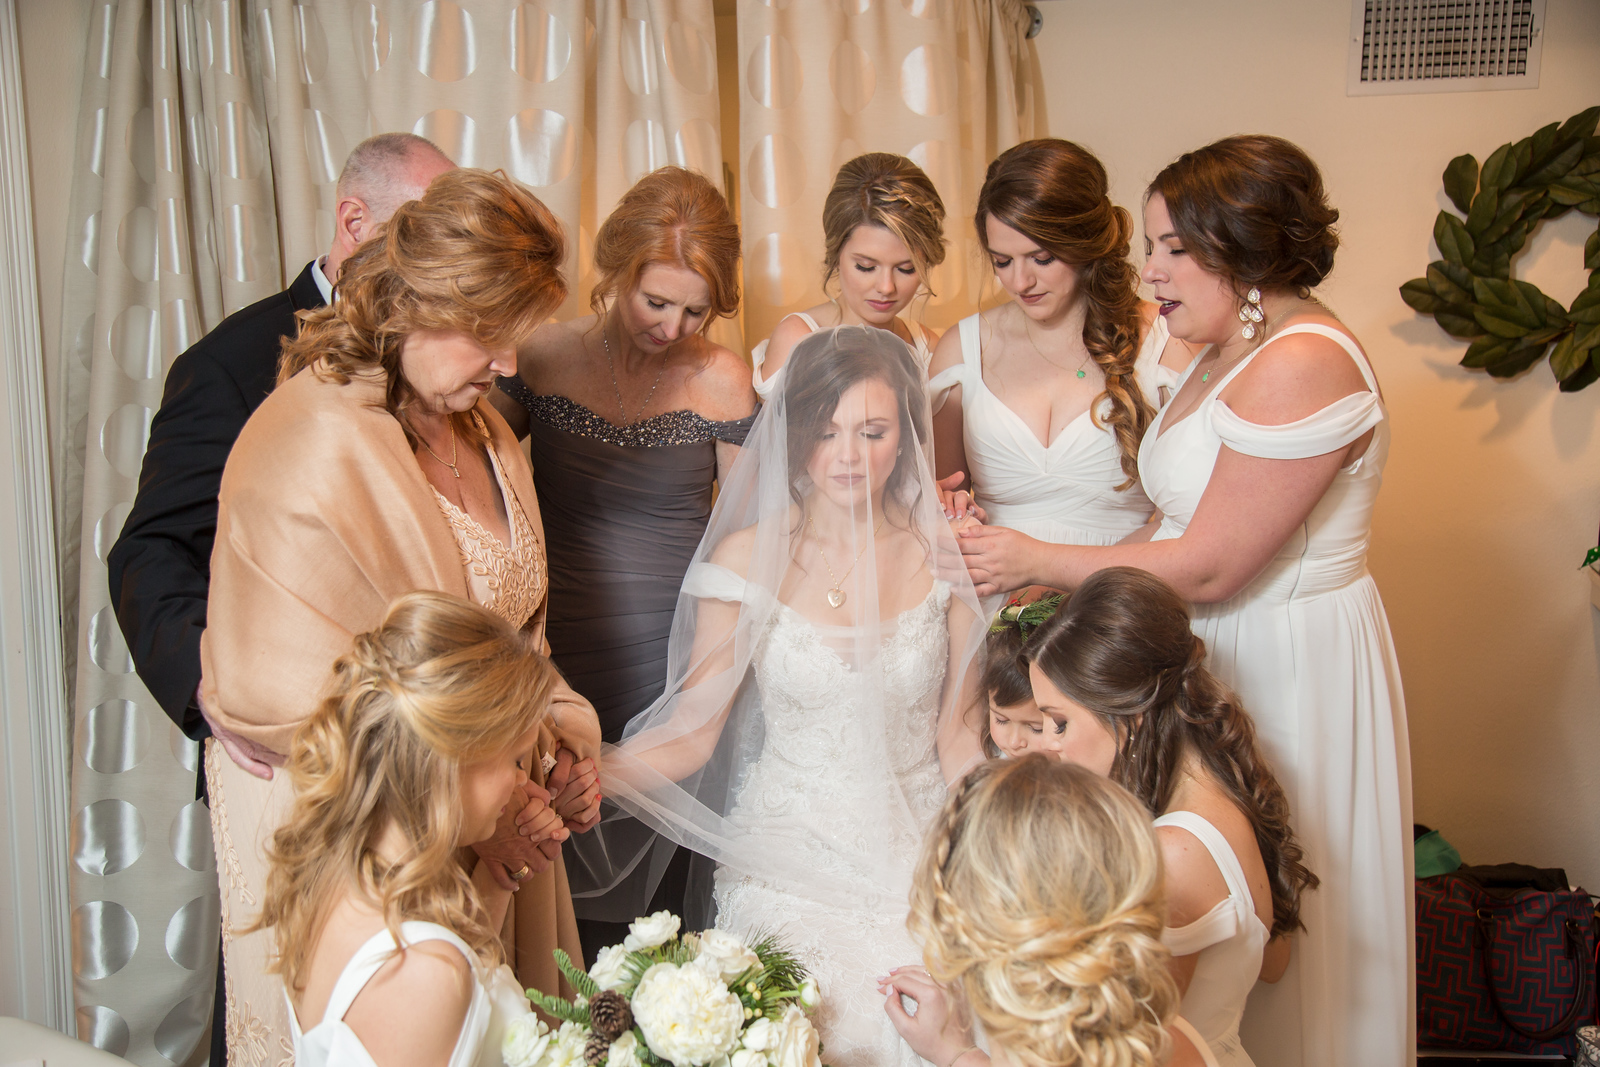 A bride praying with her family before her wedding ceremony